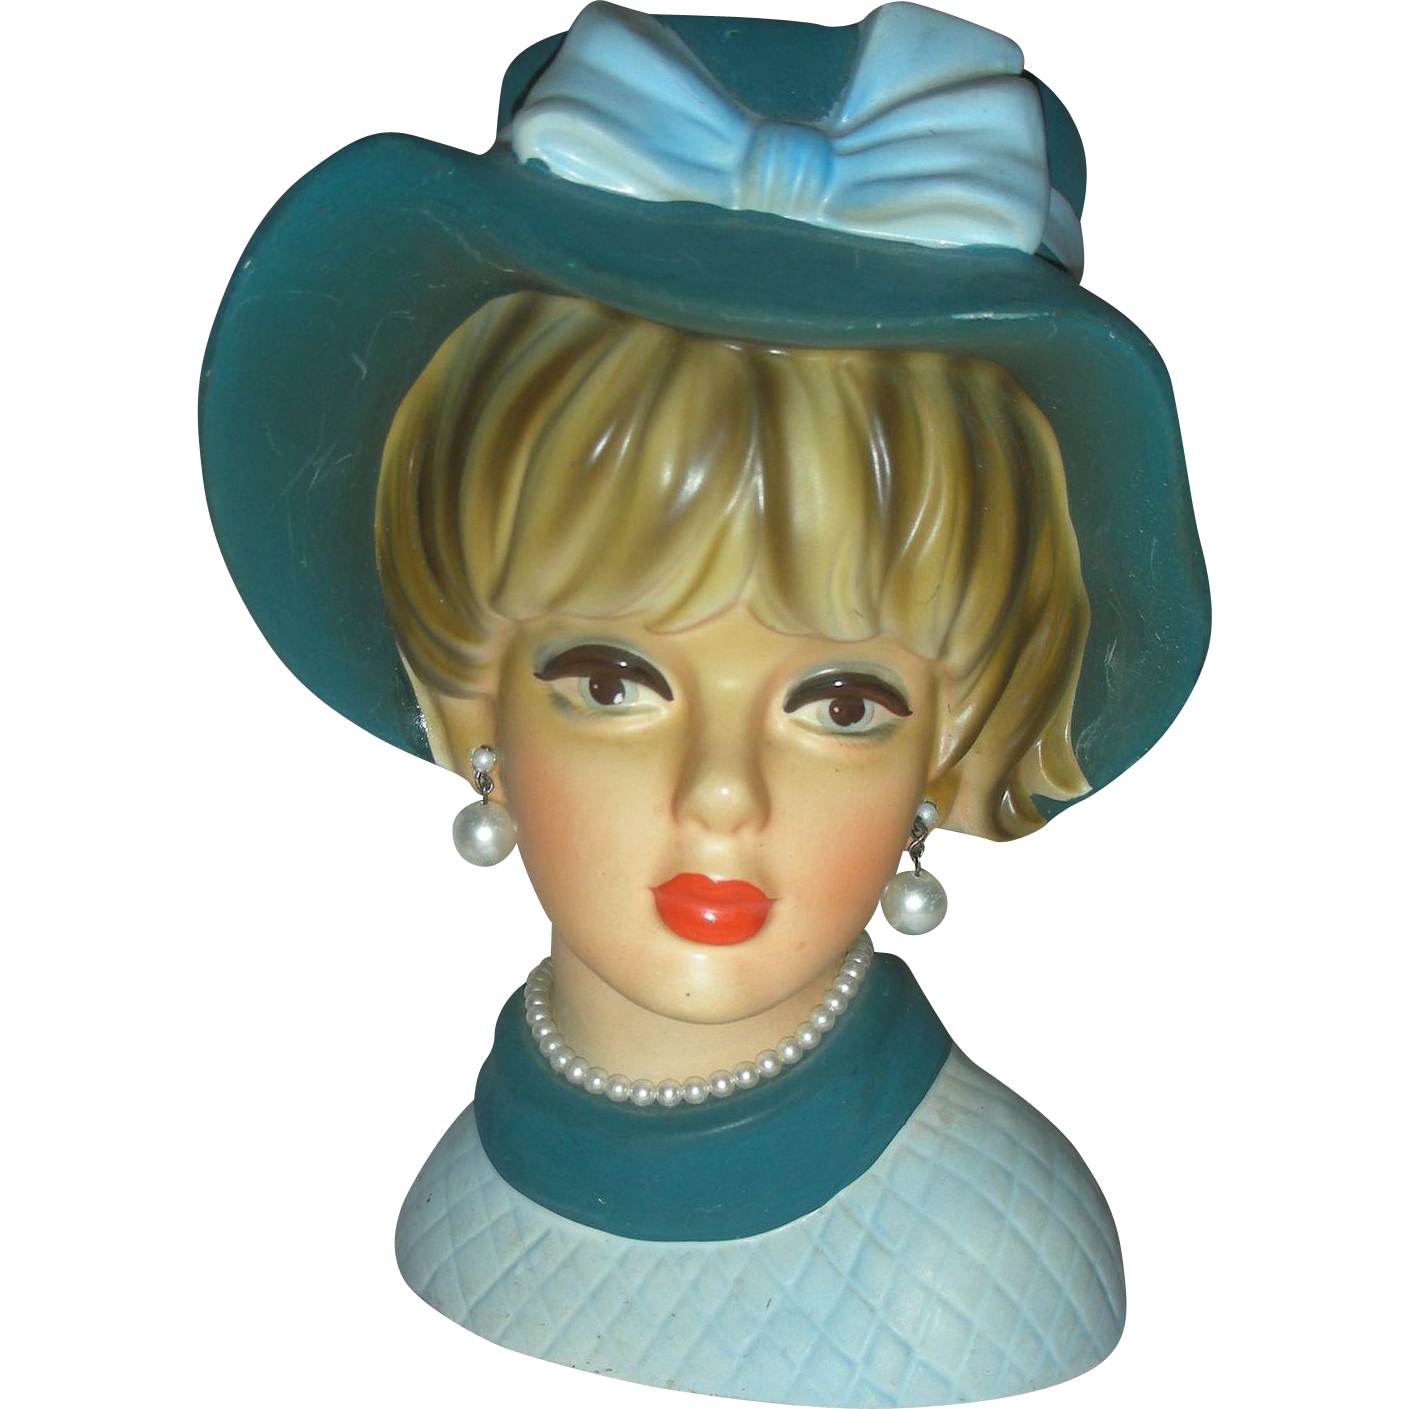 Vintage Lady Headvase 8.5 inch Planter Head Vase Napco